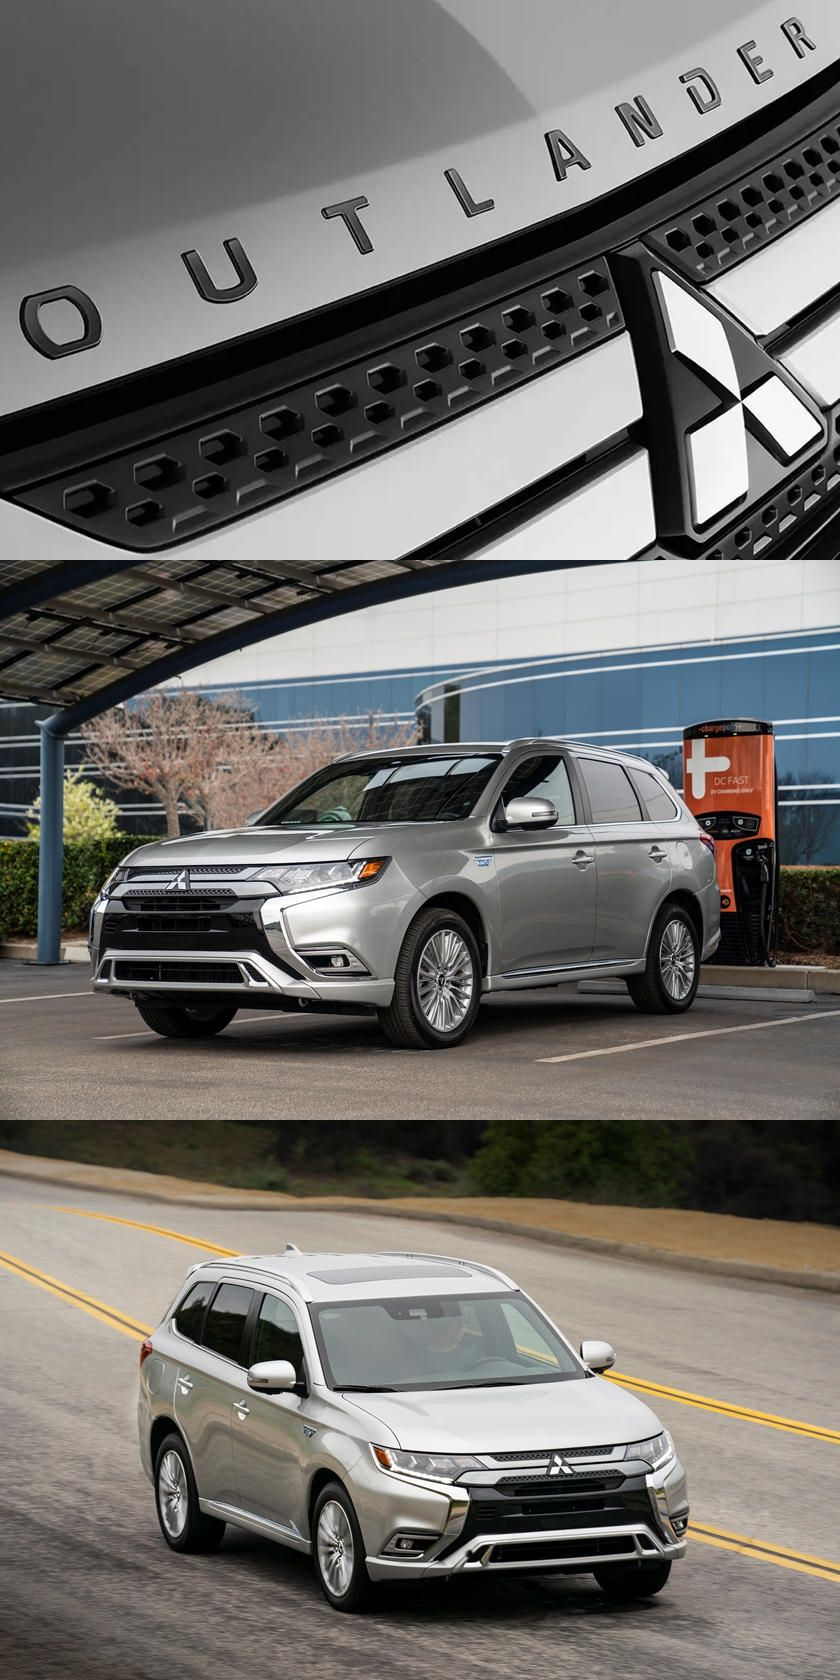 Next Mitsubishi Outlander Might Be Powered By Nissan The Renault Nissan Mitsubishi Alliance Is Bearing Fruit Mitsubishi Outlander Nissan Mitsubishi Crossover